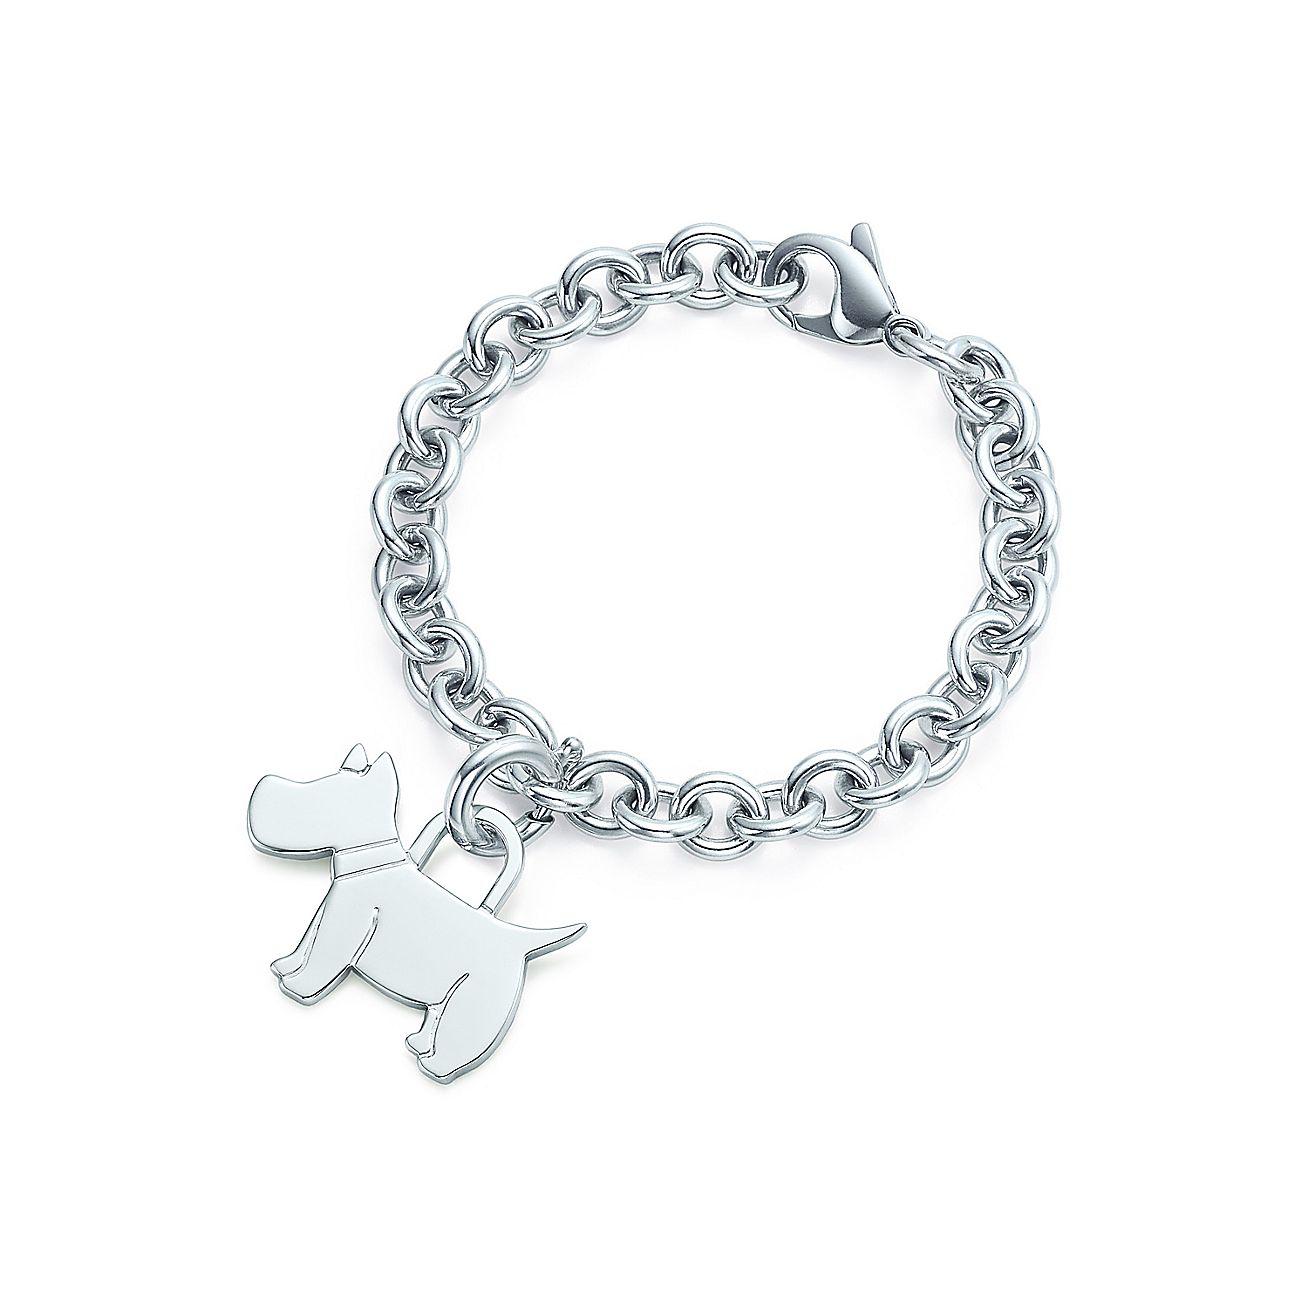 Scottie tag<br>Charm and bracelet